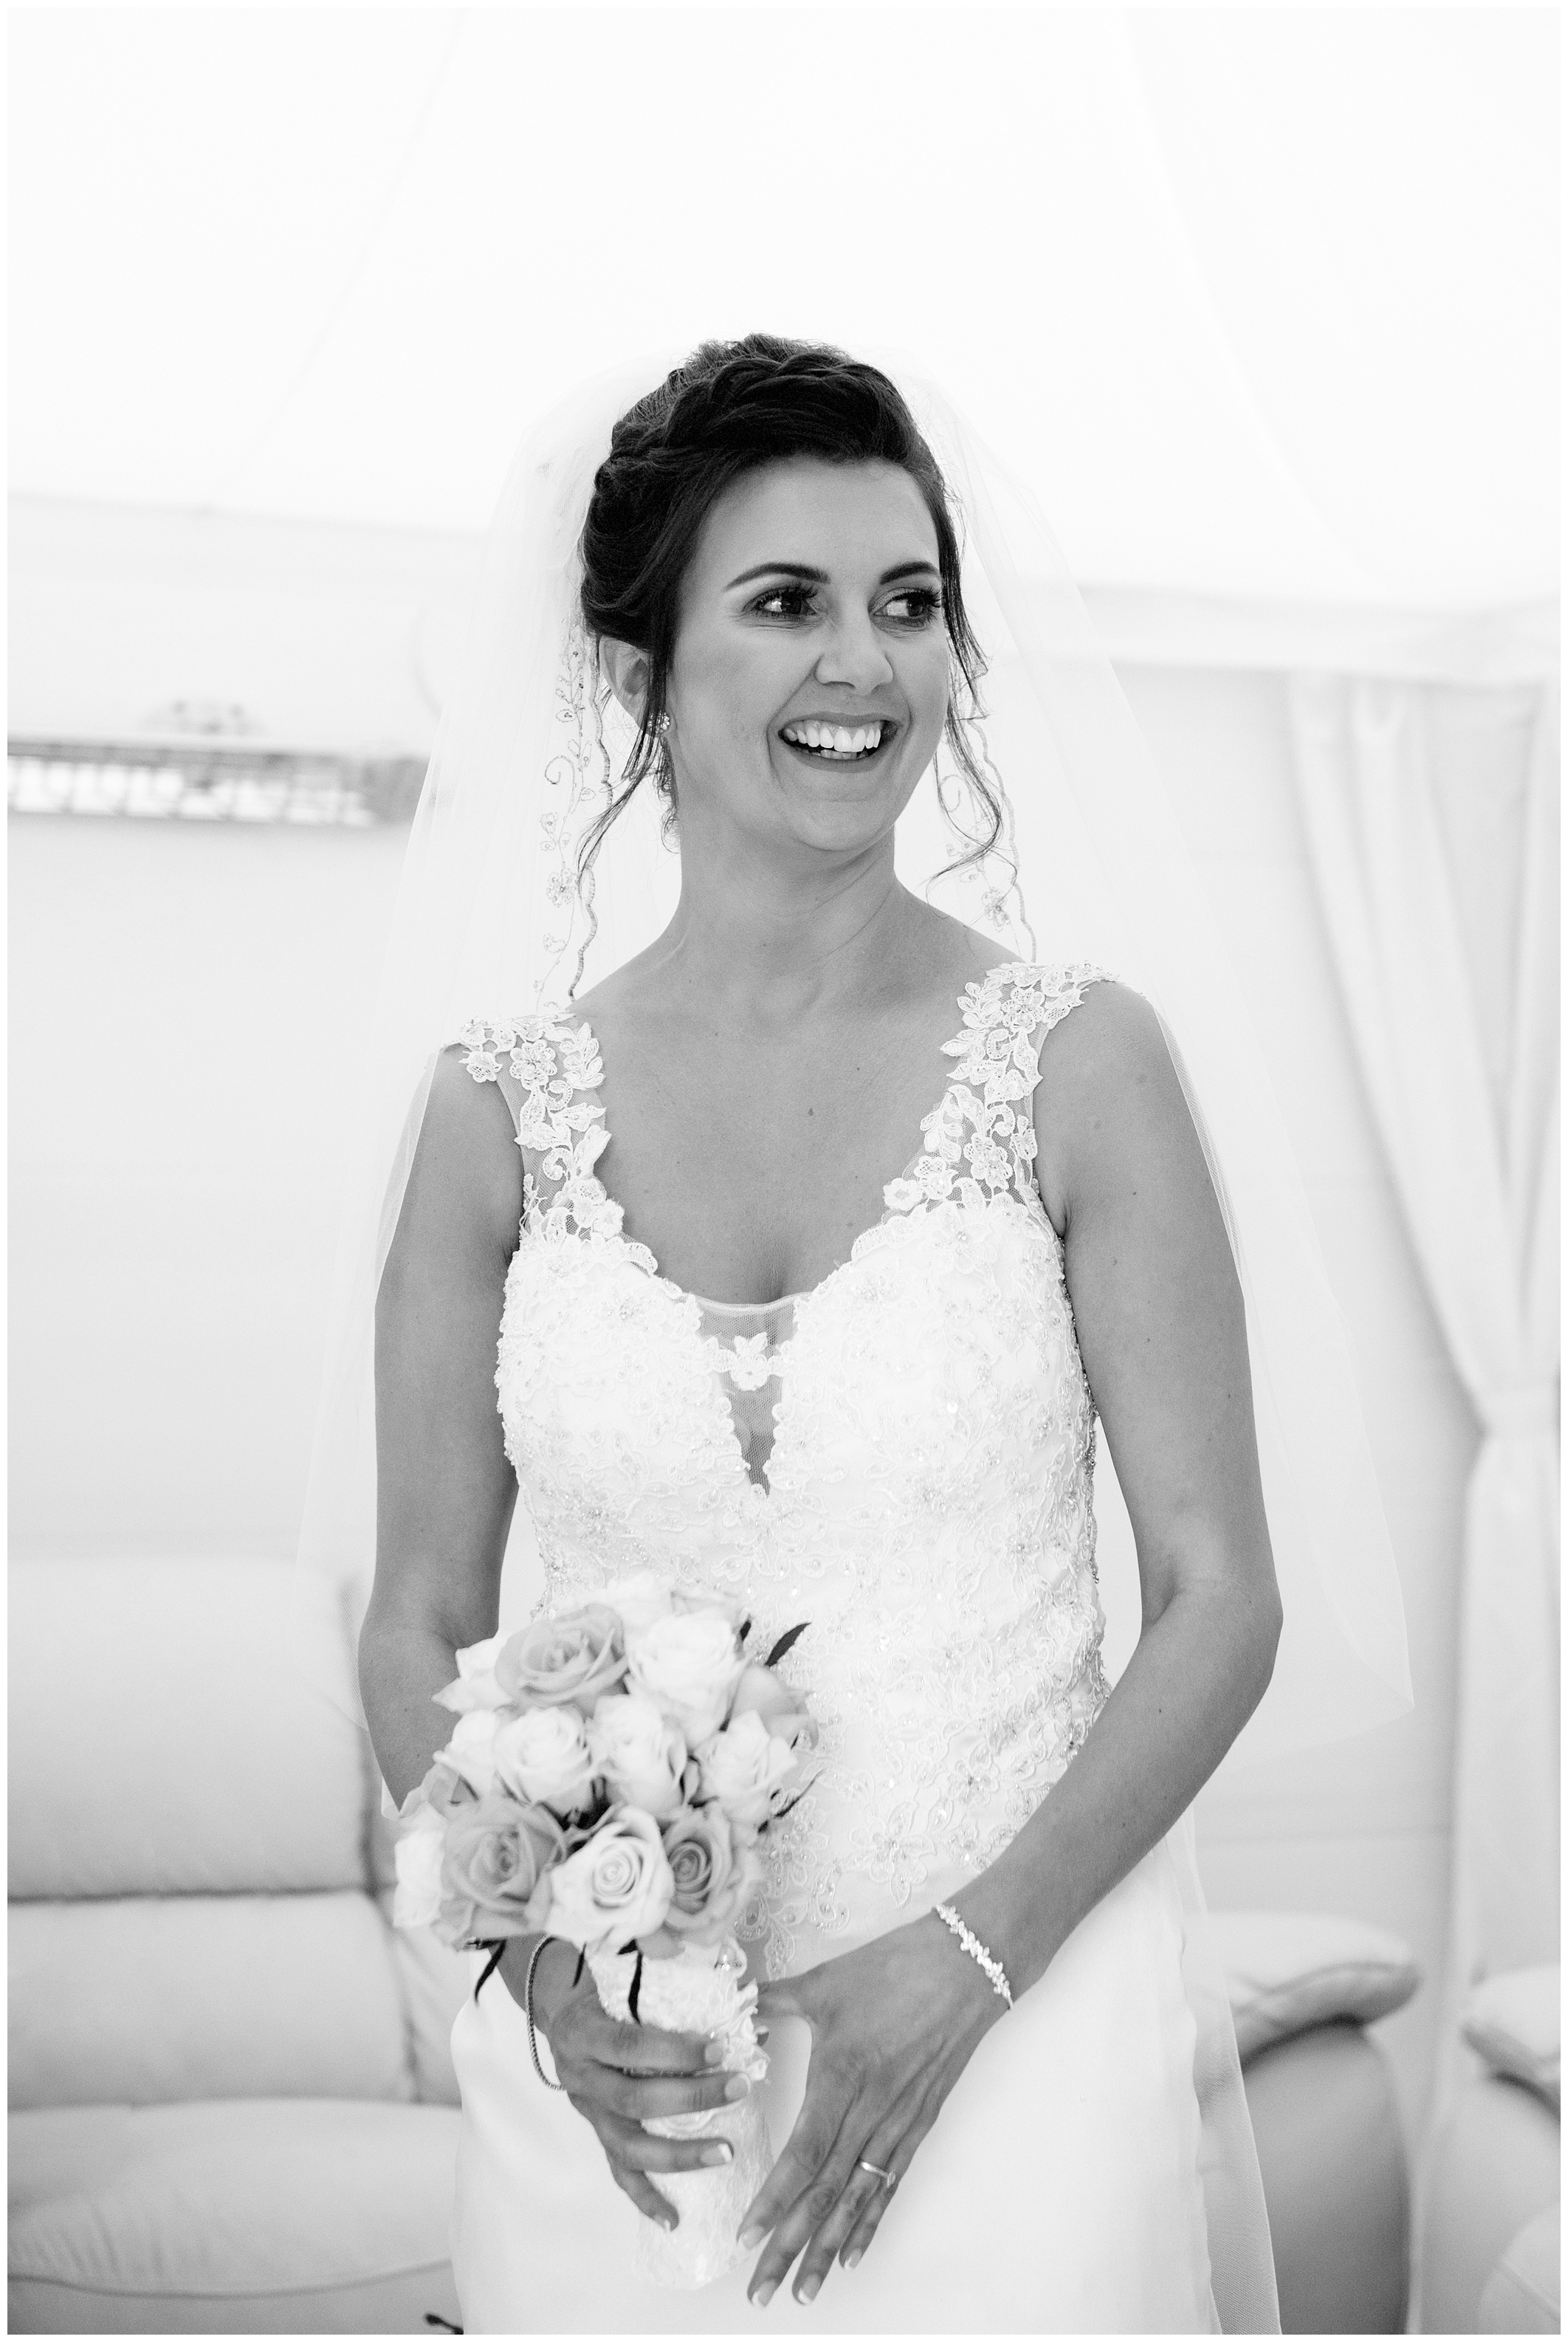 Lynsey_Andy_Rossharbour_Fermanagh_wedding_jude_browne_photography_0030.jpg